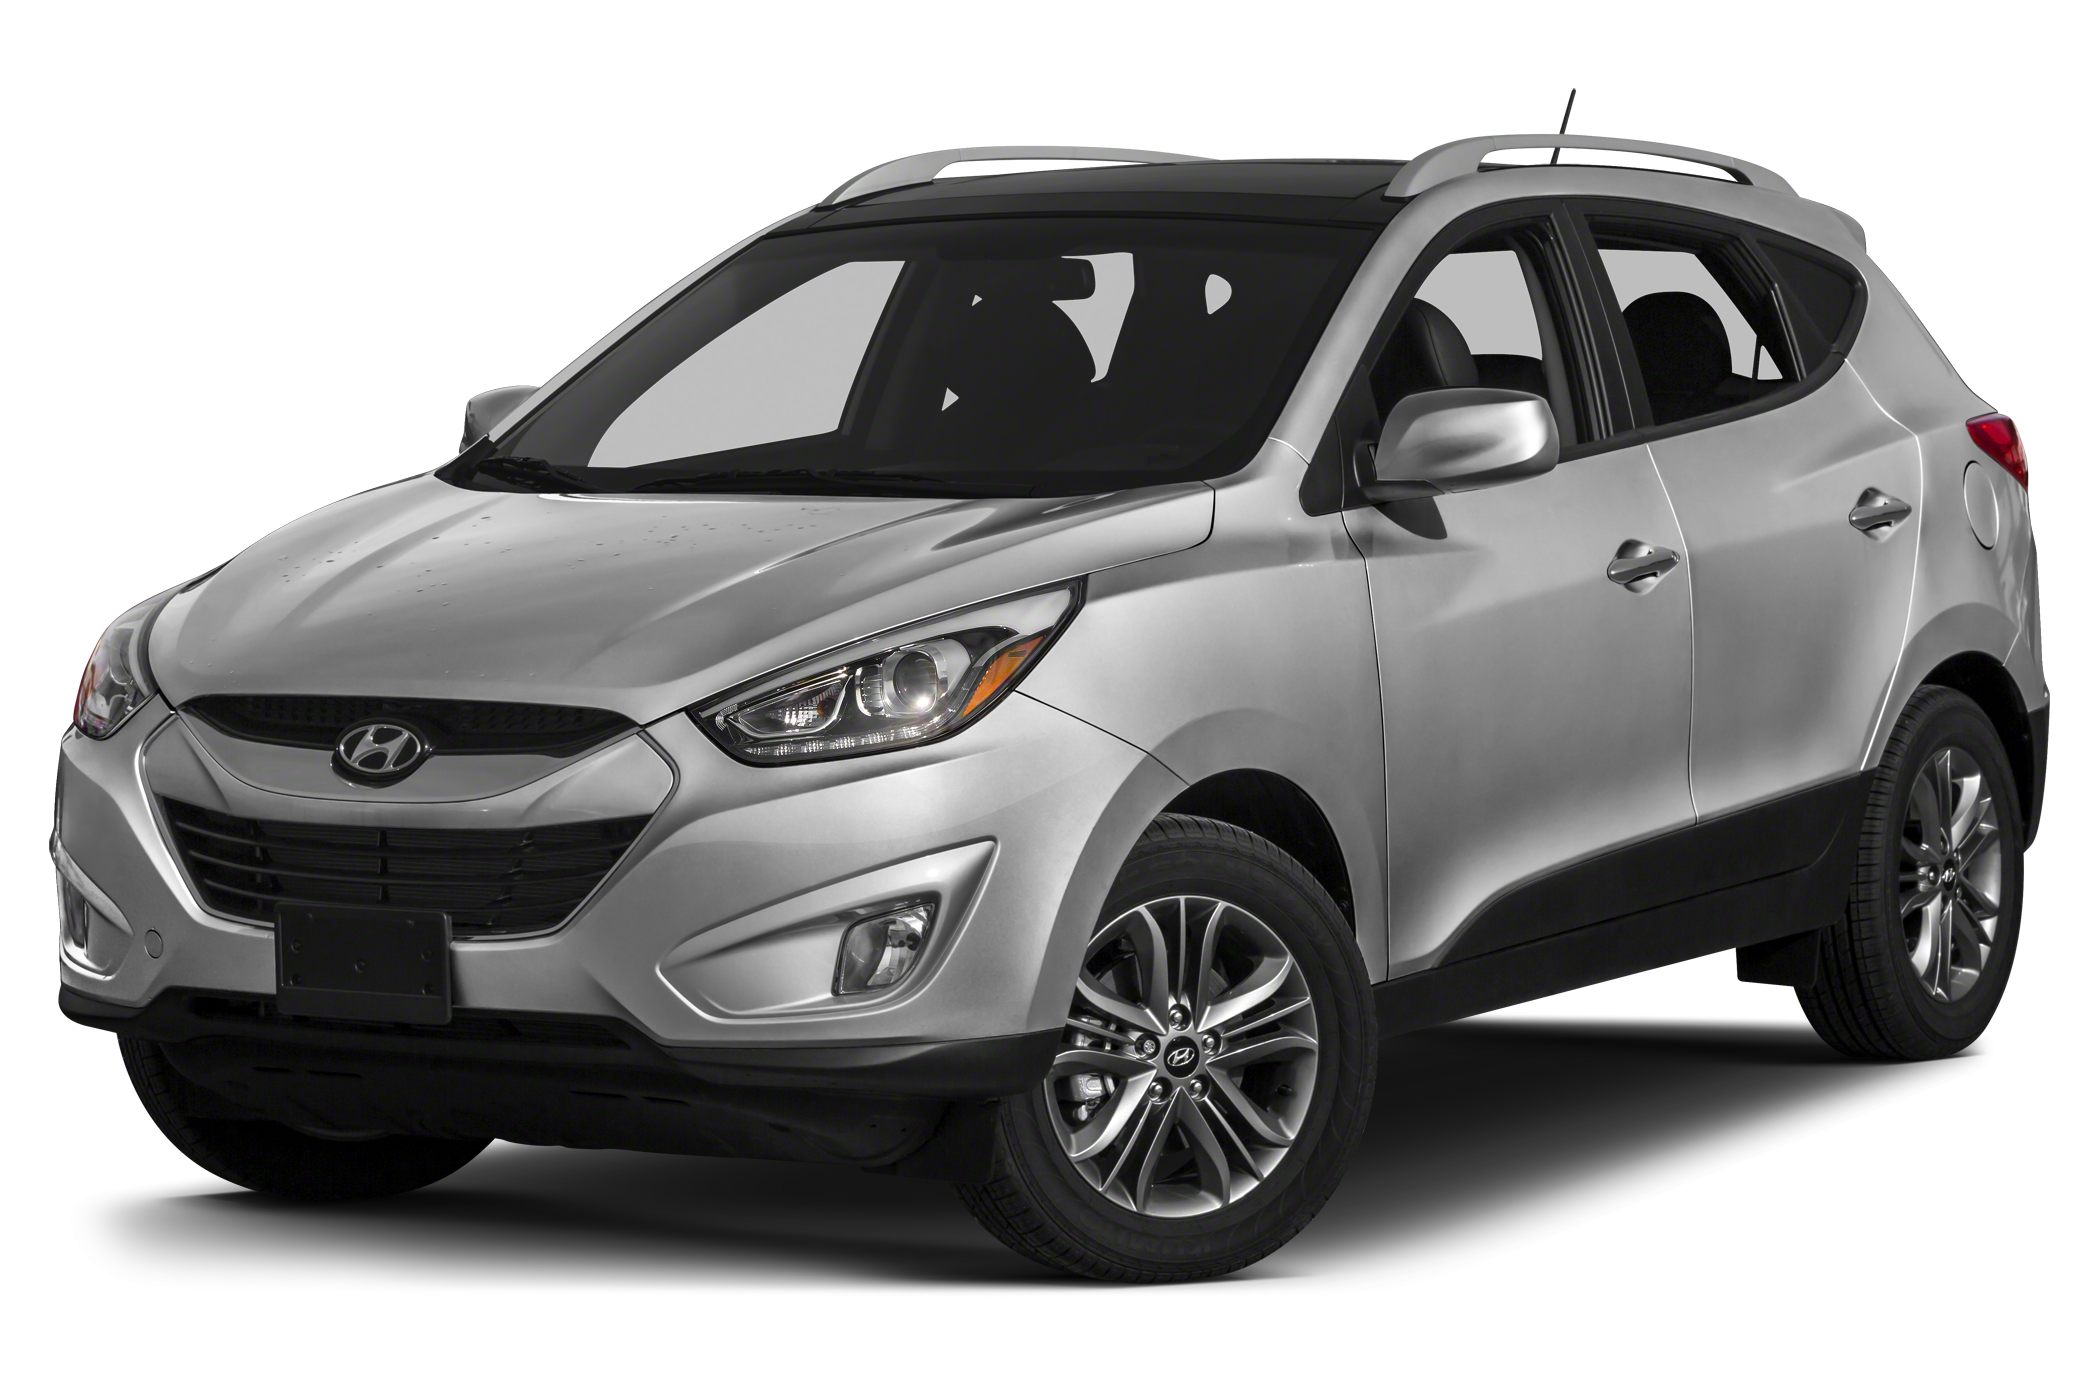 2015 Hyundai Tucson GLS SUV for sale in Cartersville for $22,130 with 0 miles.